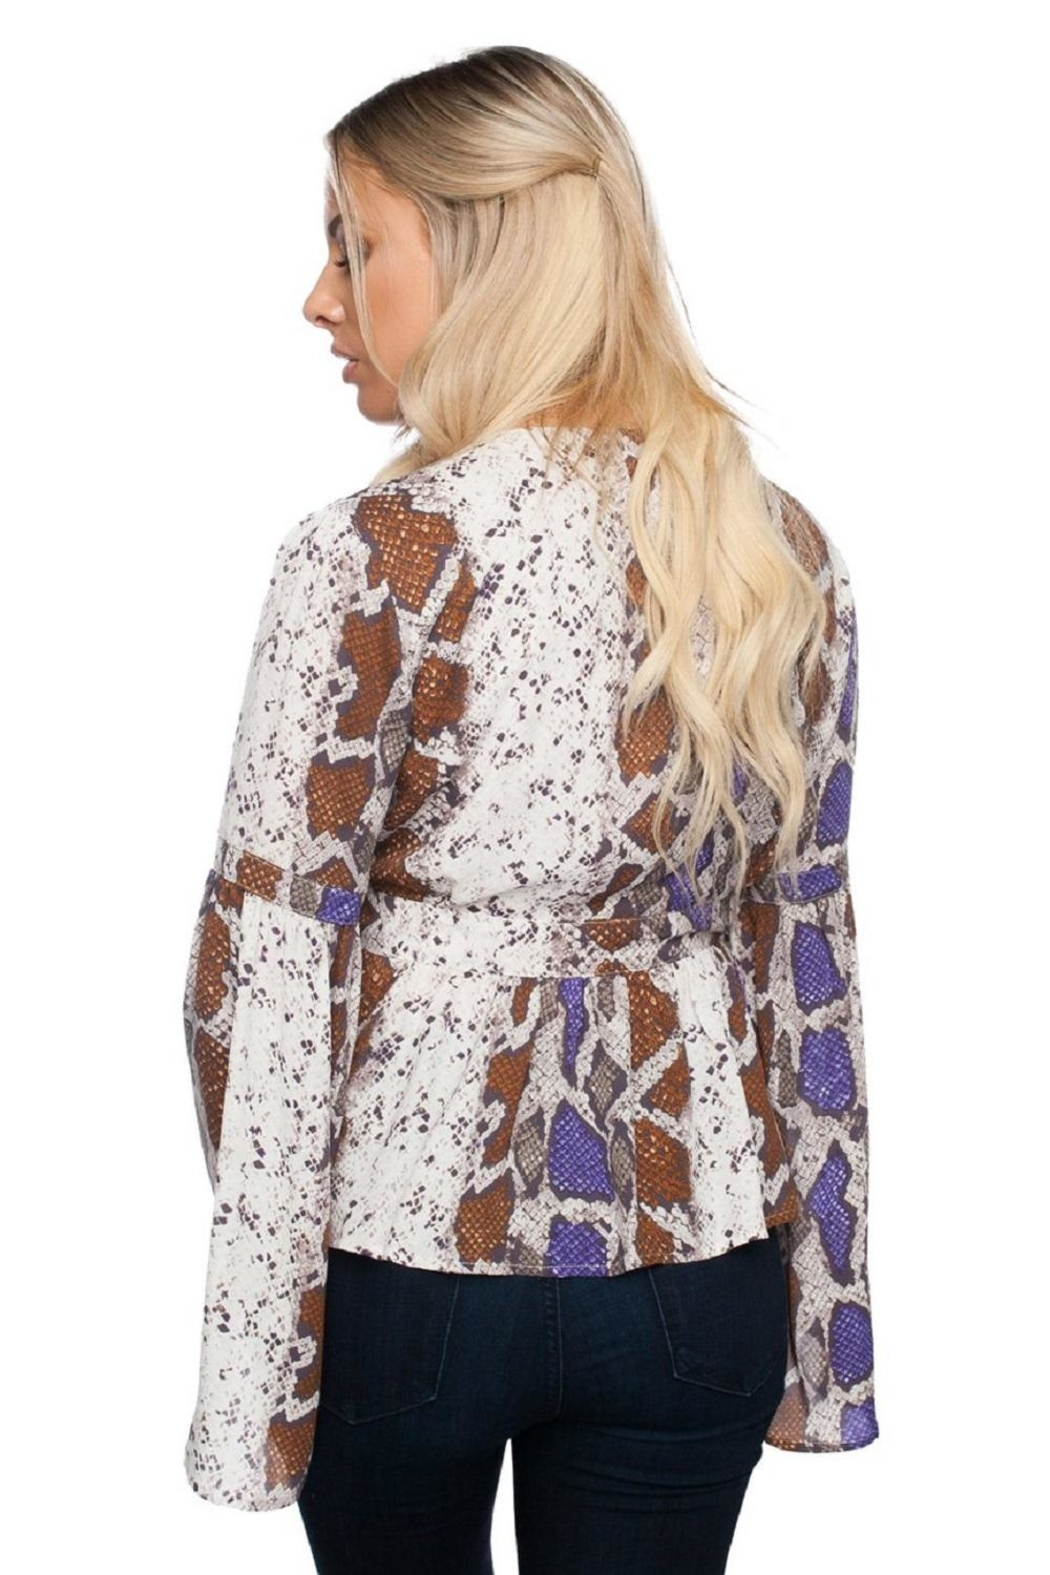 Buddy Love Loni Royal Top - Front Full Image